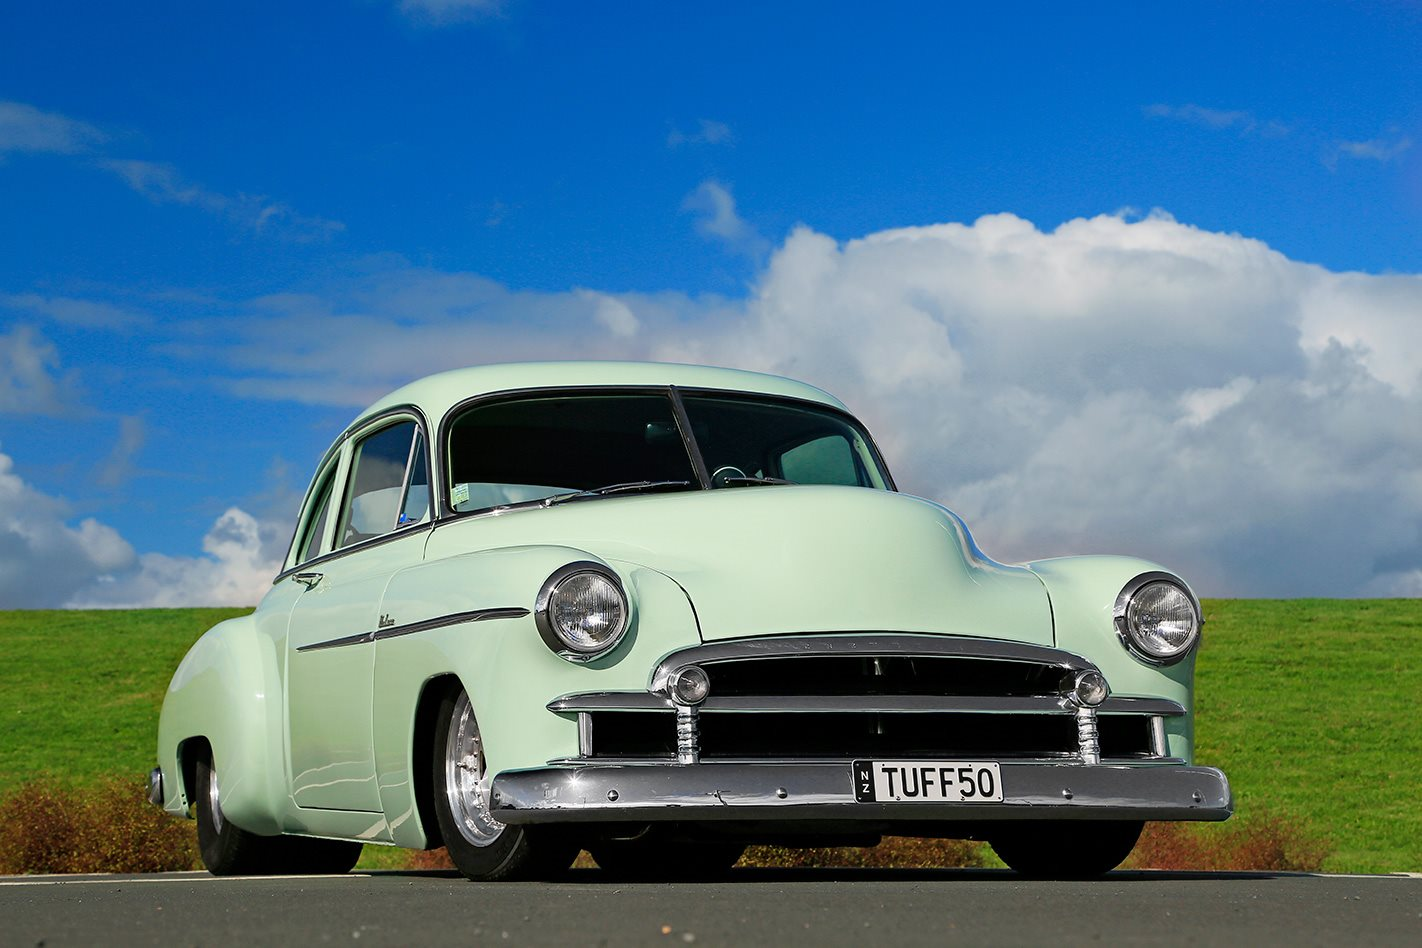 1950 V8 CHEV COUPE FRONT